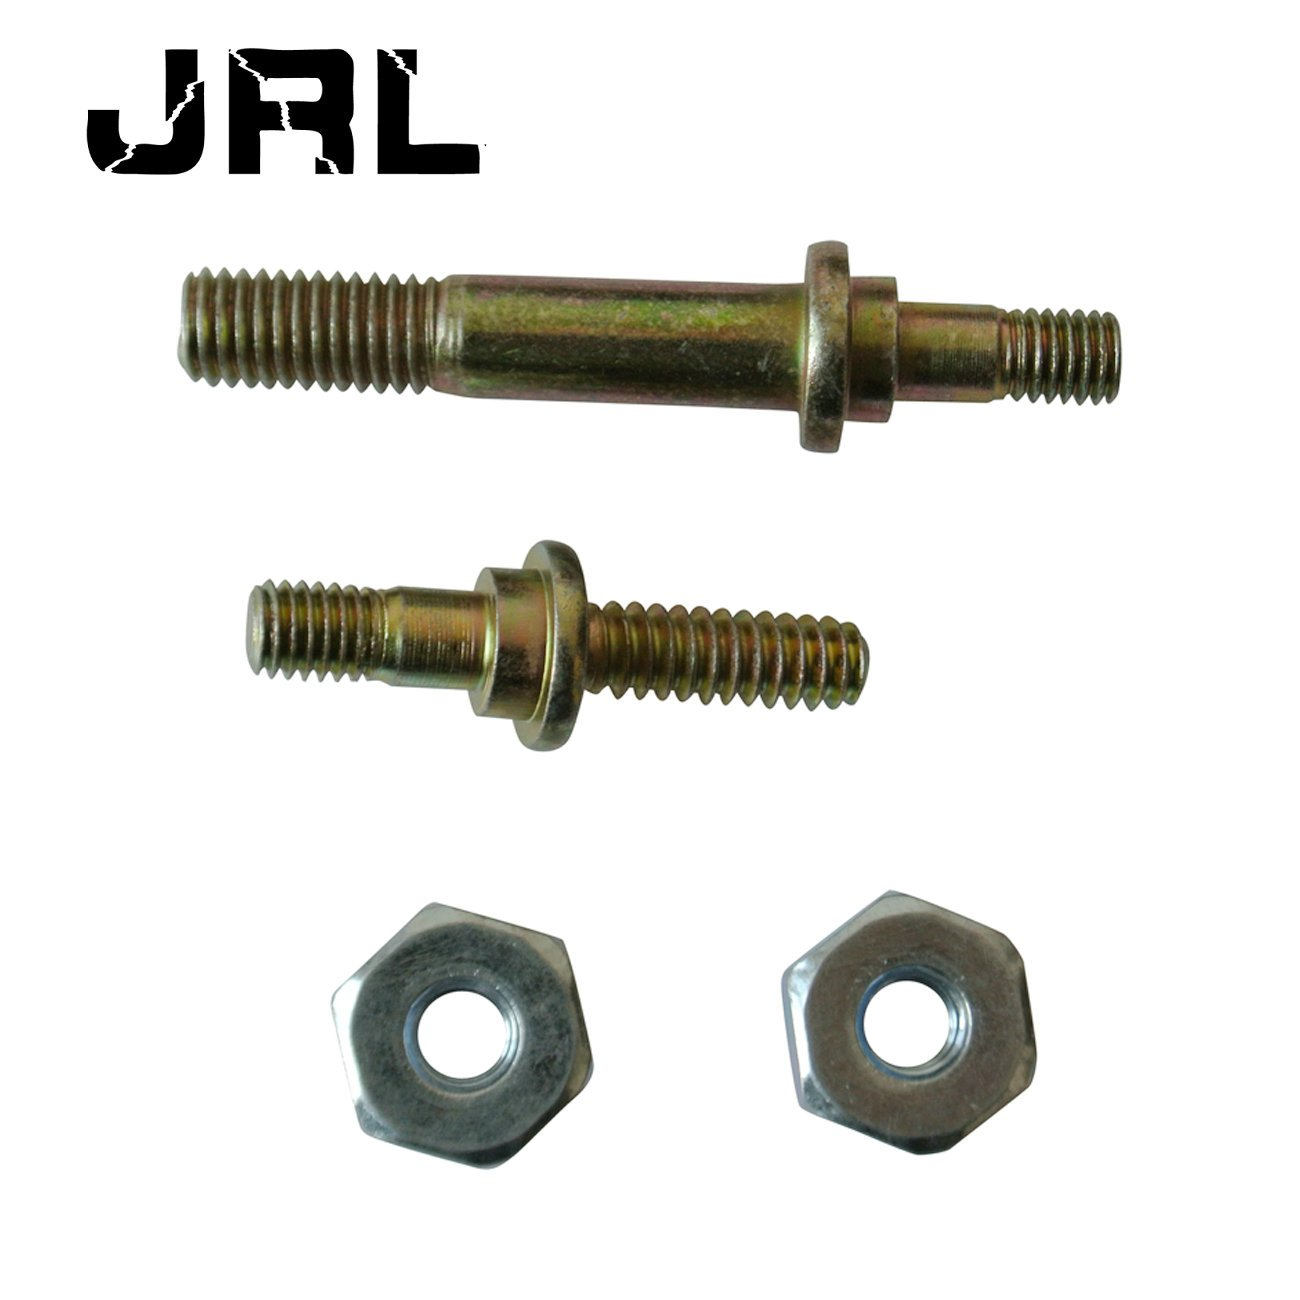 JRL Bar Stud Collar Screw Long & Nut For STIHL 029 039 MS290 390 Kanglai Machinery